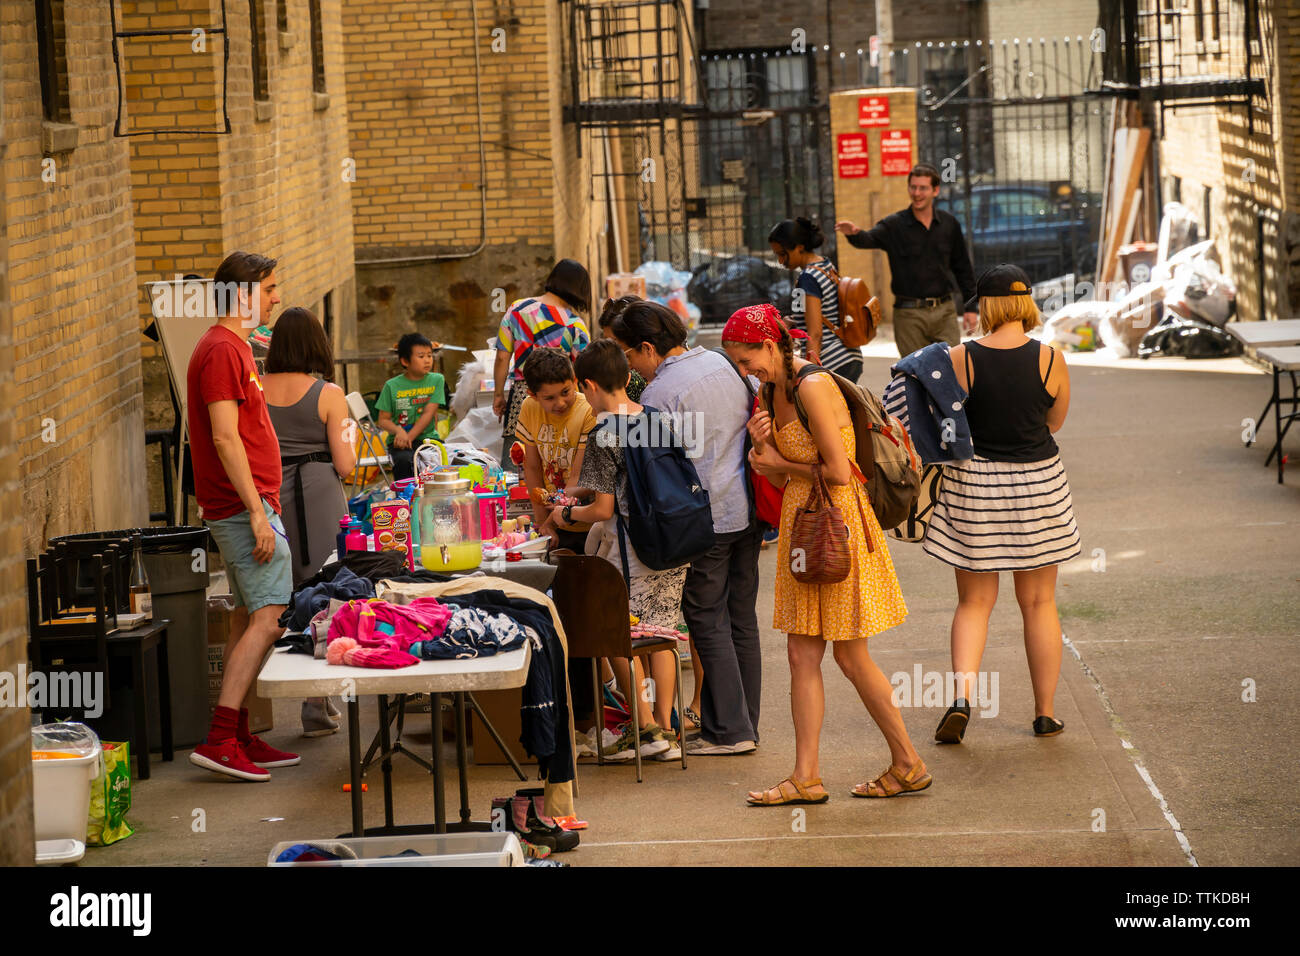 Shoppers search for bargains at an apartment building stoop sale located in the service alley of a building in Washington Heights in New York on Saturday, June 8, 2019.  (© Richard B. Levine) - Stock Image